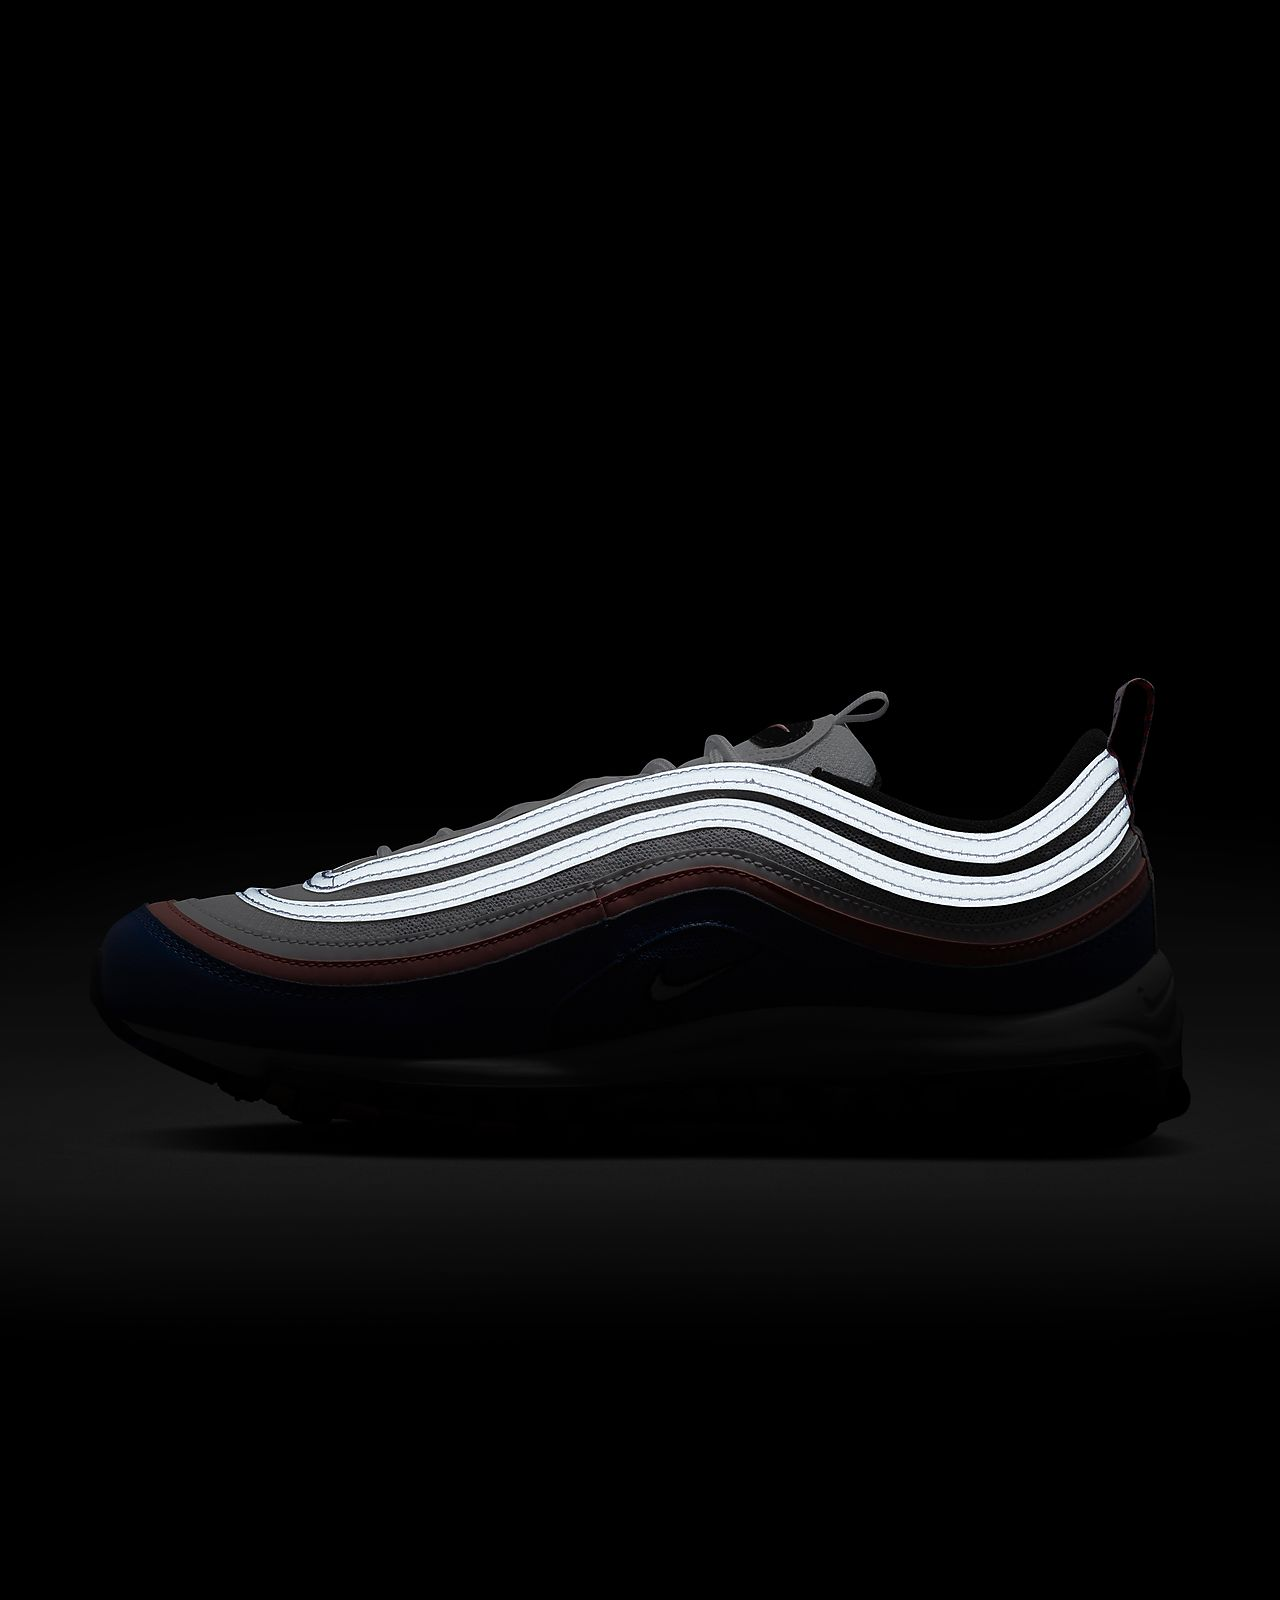 Official Images: Nike Air Max 97 Plus Black Anthracite